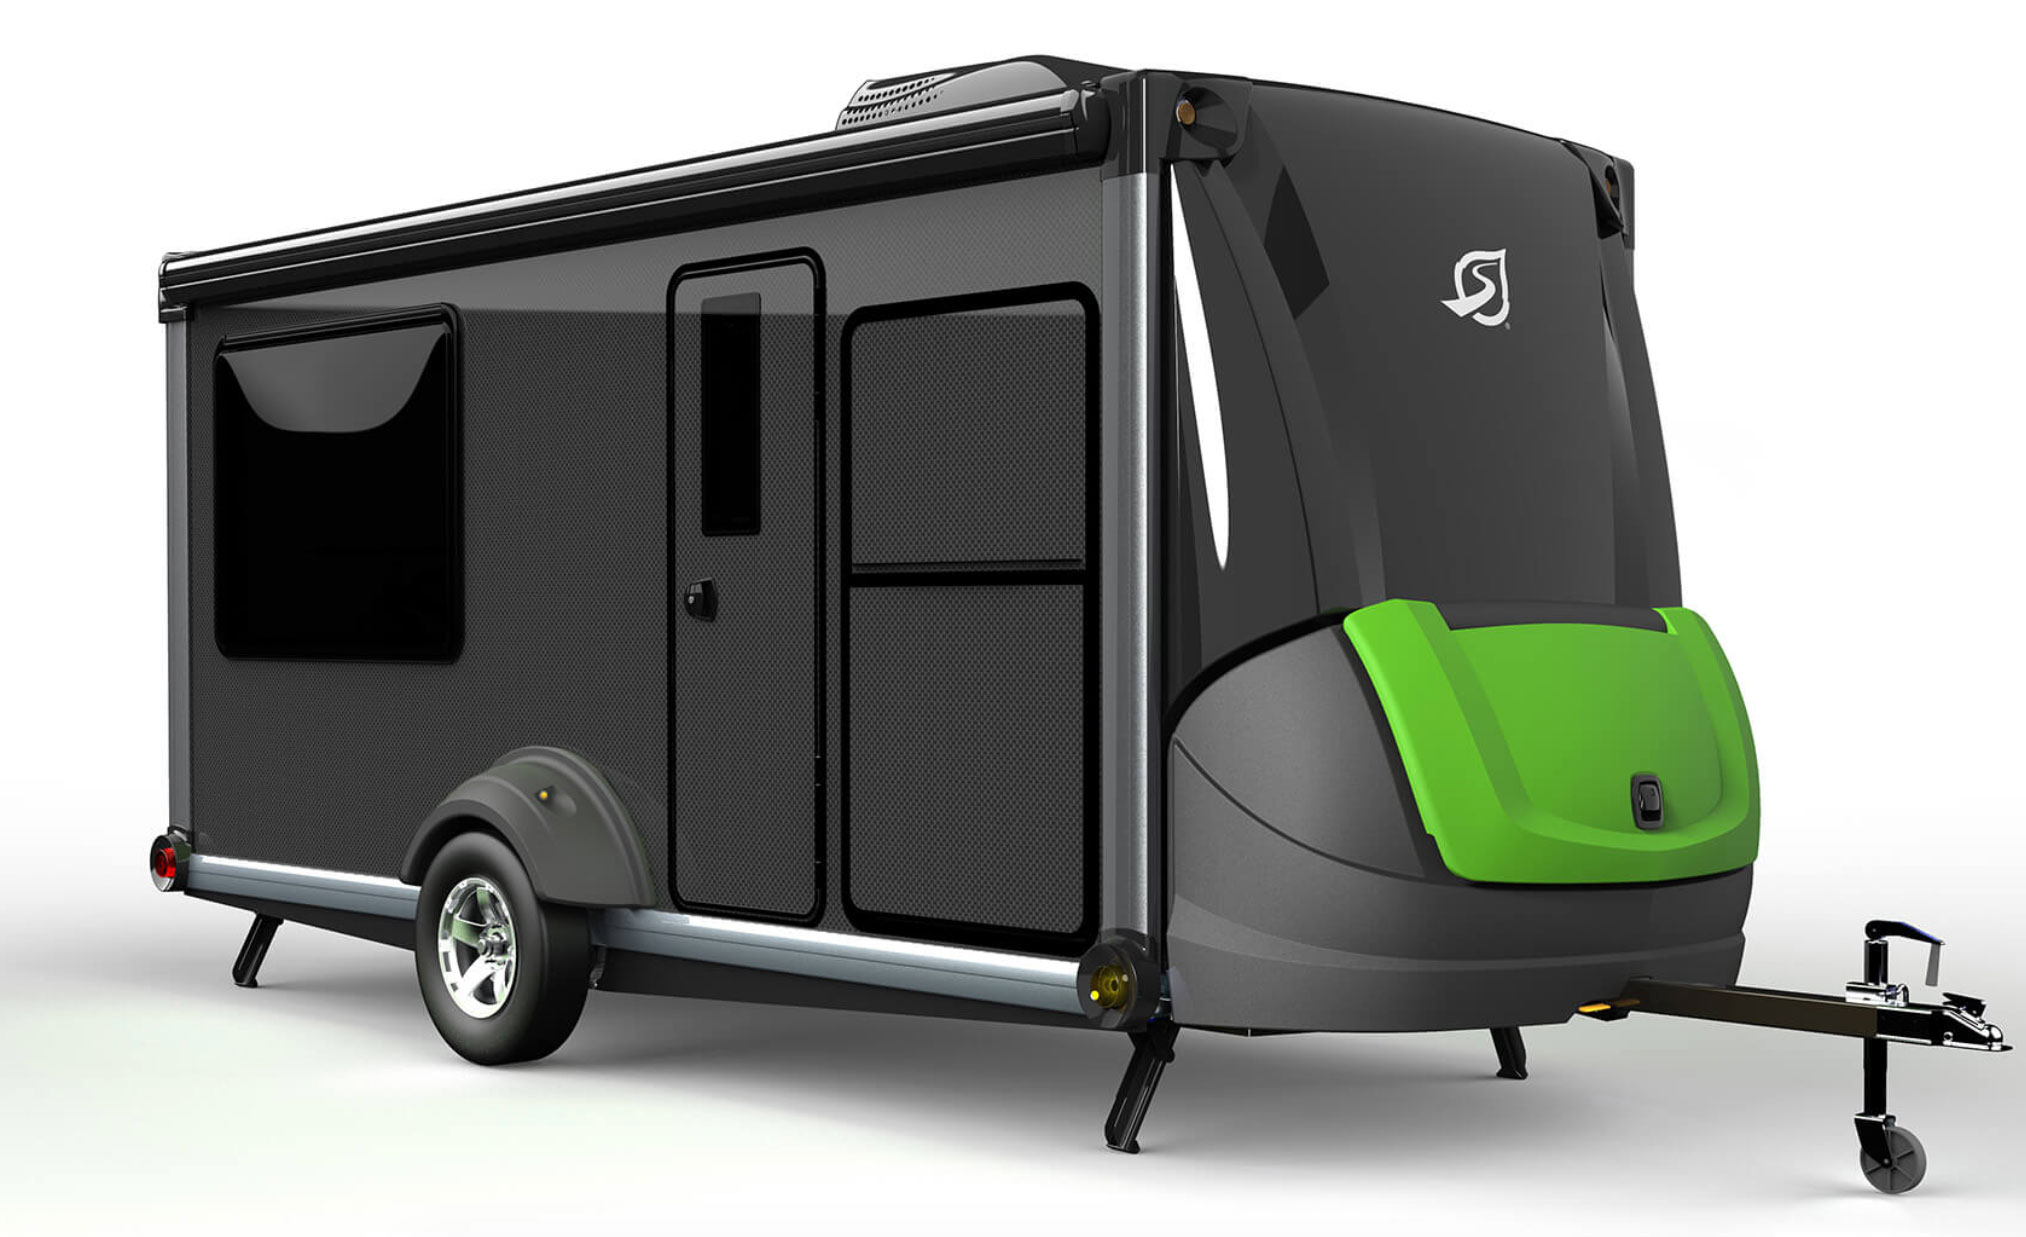 Modular Camper: SylvanSport VAST Made for Families With Gear